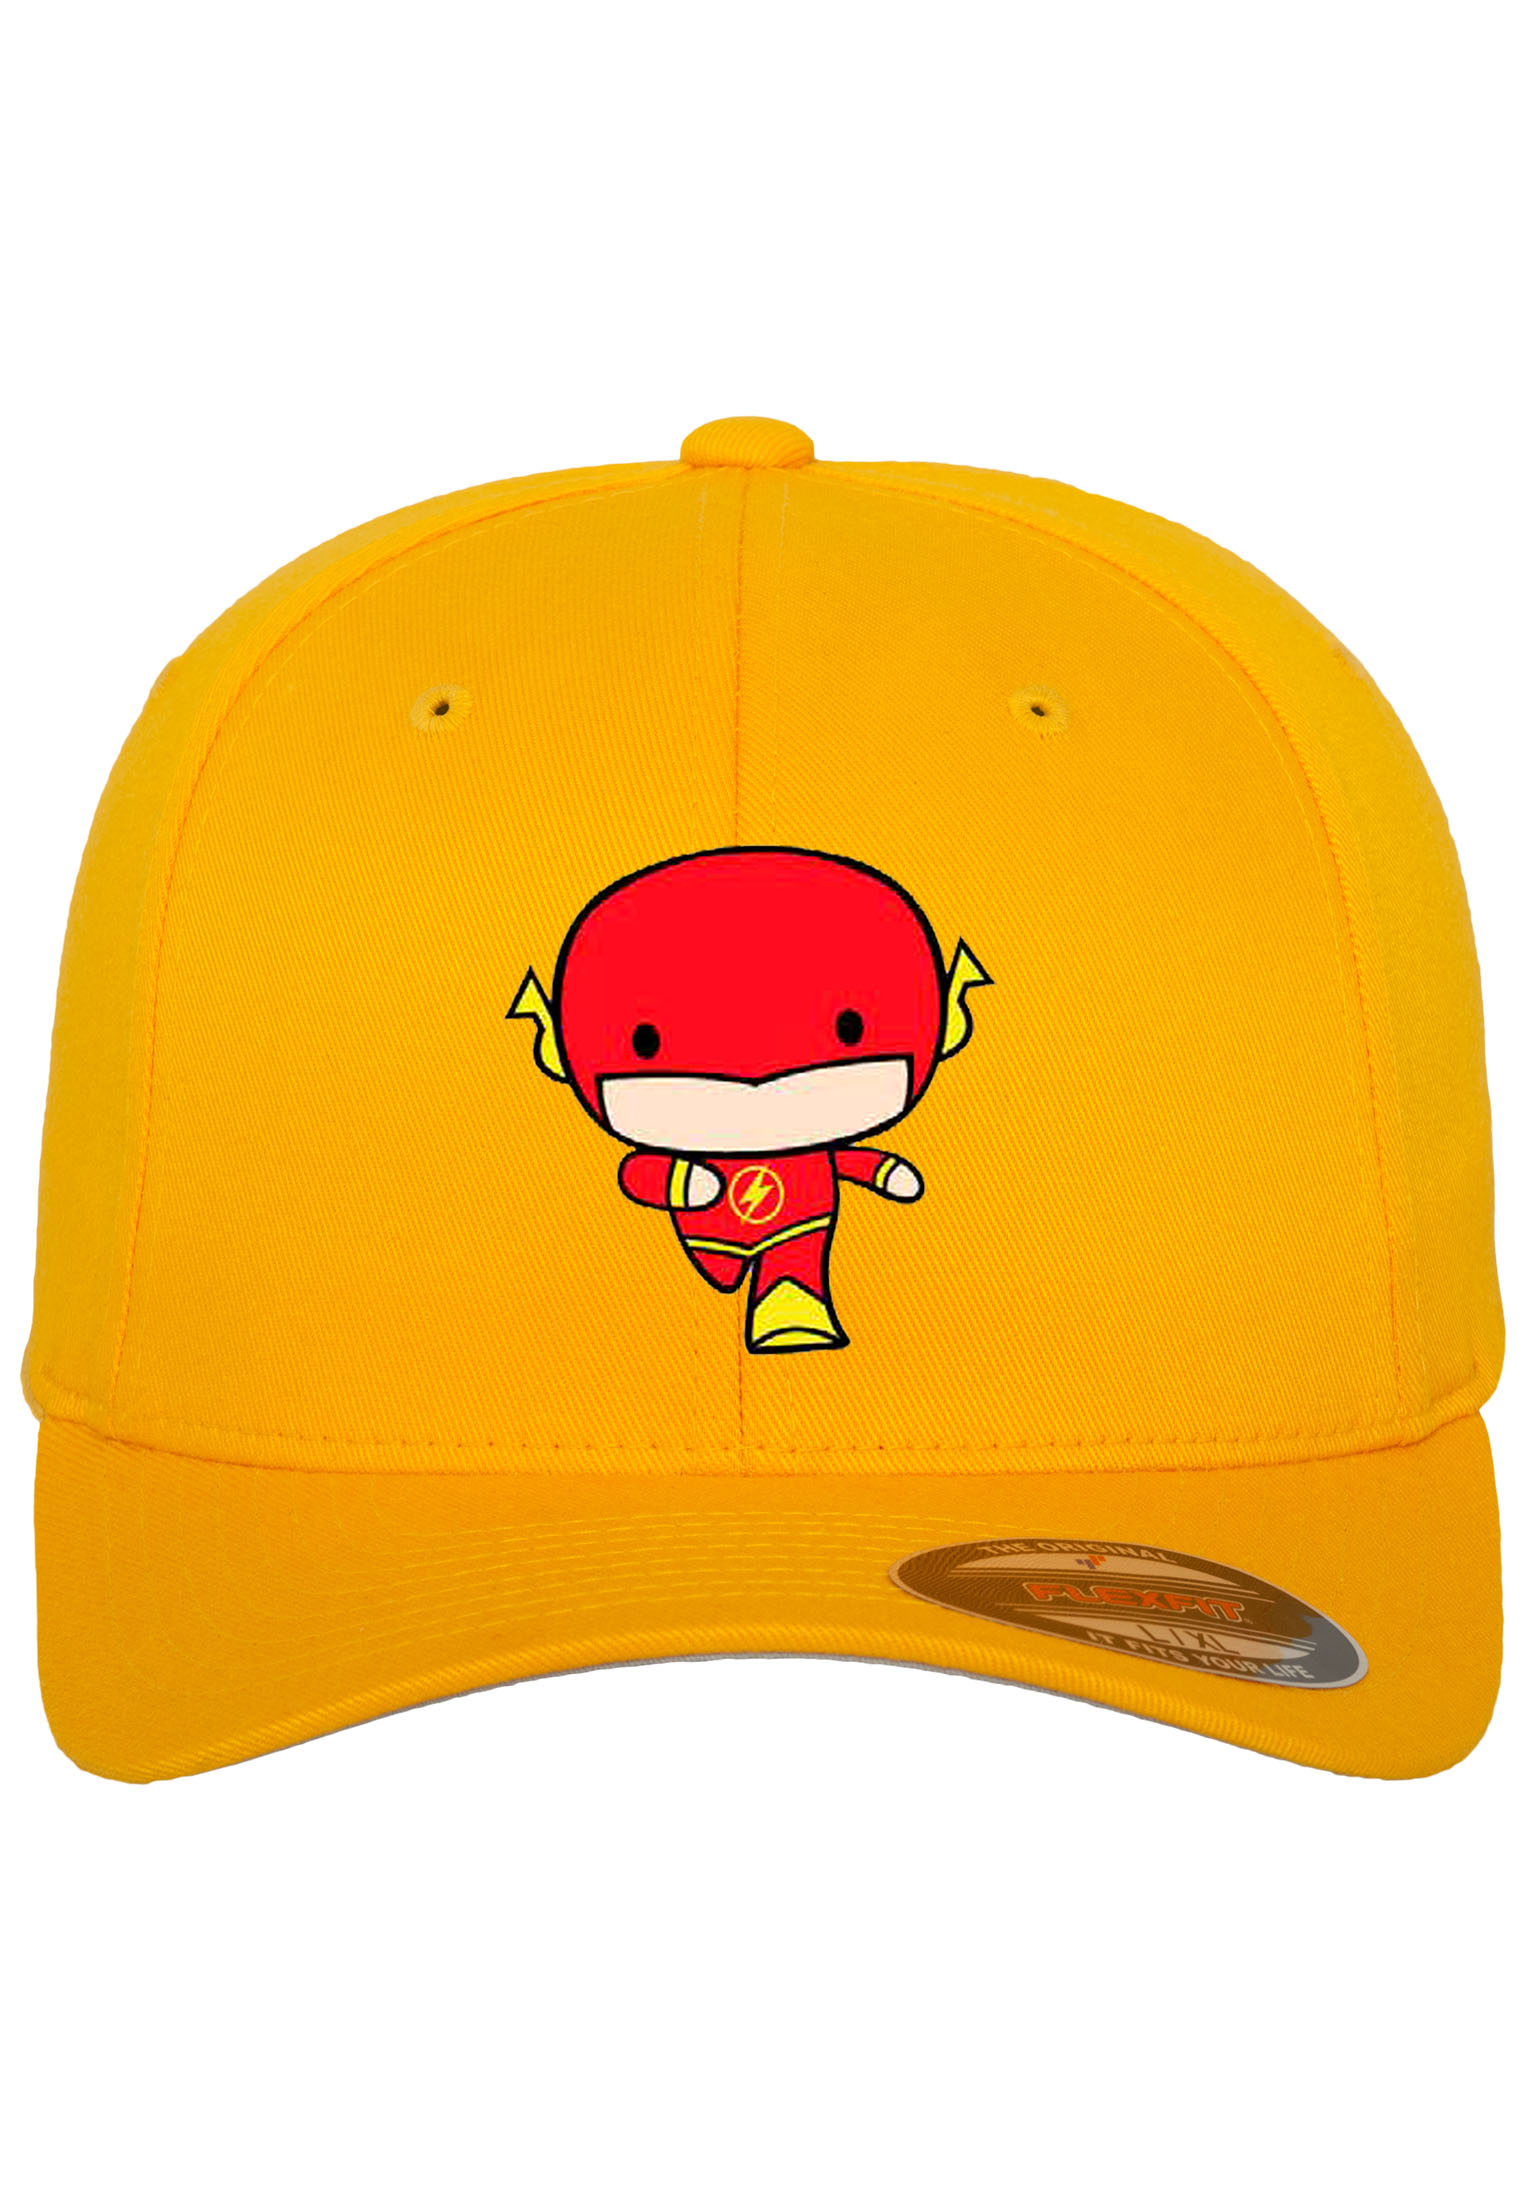 Pánska žltá šiltovka Merchcode Flash Comic Flexfit Cap L XL 024dc83664